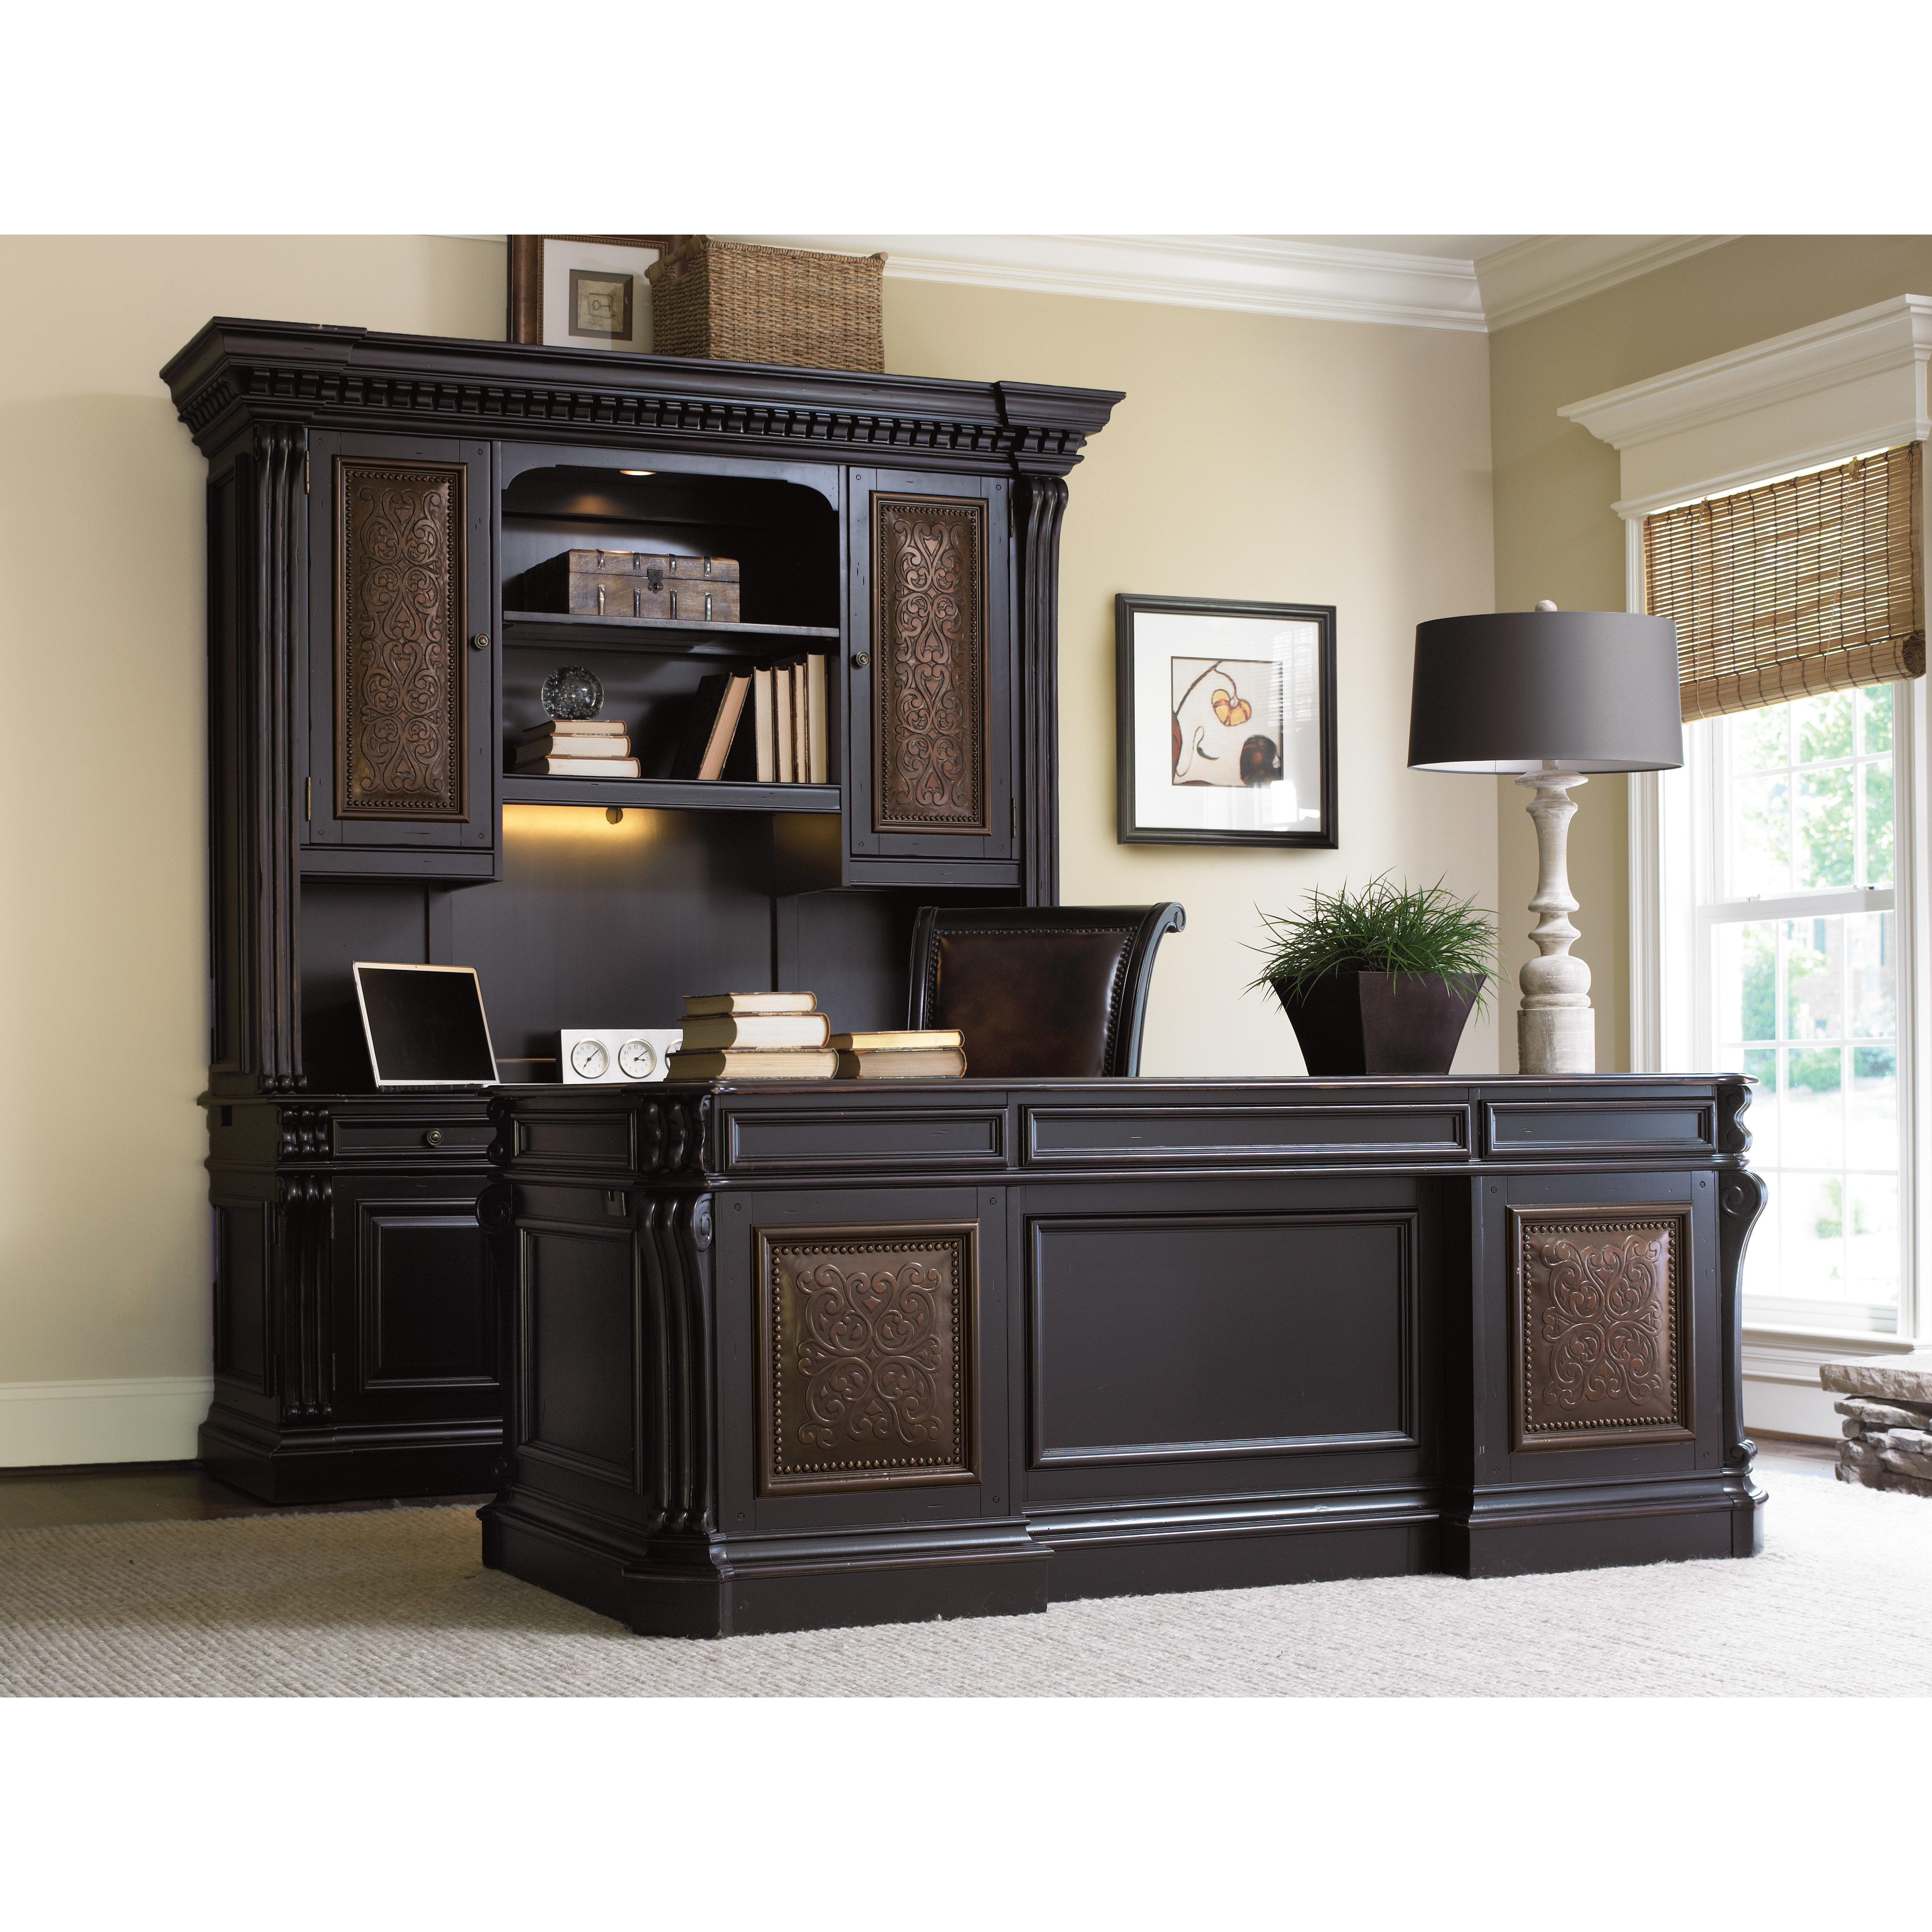 Best ideas about Hooker Office Furniture . Save or Pin Hooker Furniture Telluride Executive Desk with Keyboard Now.